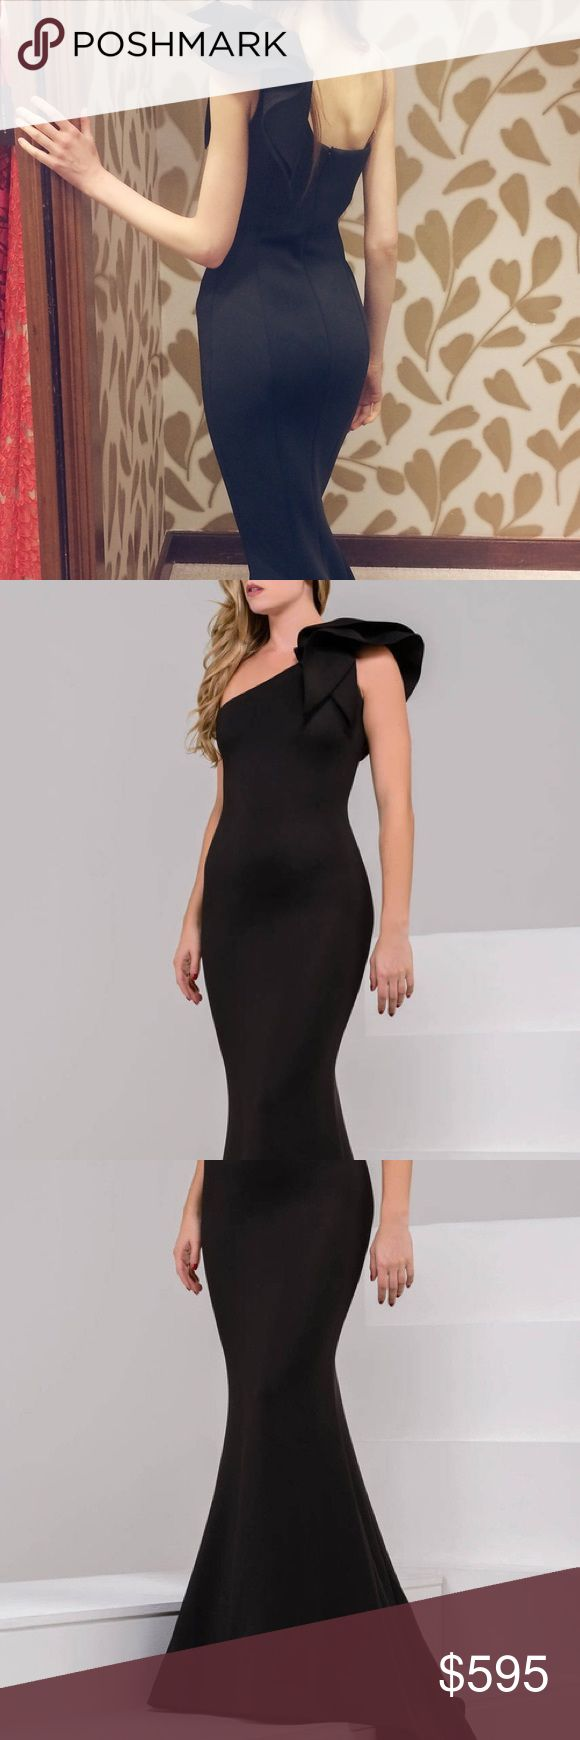 Jovani One-Shoulder Mermaid Gown Wonderfully sculpted from a luxurious scuba fabric, this classy piece flaunts an asymmetrical neckline with stunning ruffle detail cascading from one shoulder. The seam-curved silhouette has an exquisite hourglass shape. The mermaid skirt flares in a stunningly molded design as it rushes to a divine train. This gown is BRAND NEW from Neiman Marcus, with tags and never worn. It was purchased for a wedding bridesmaid in the incorrect size of 4 (first photo…